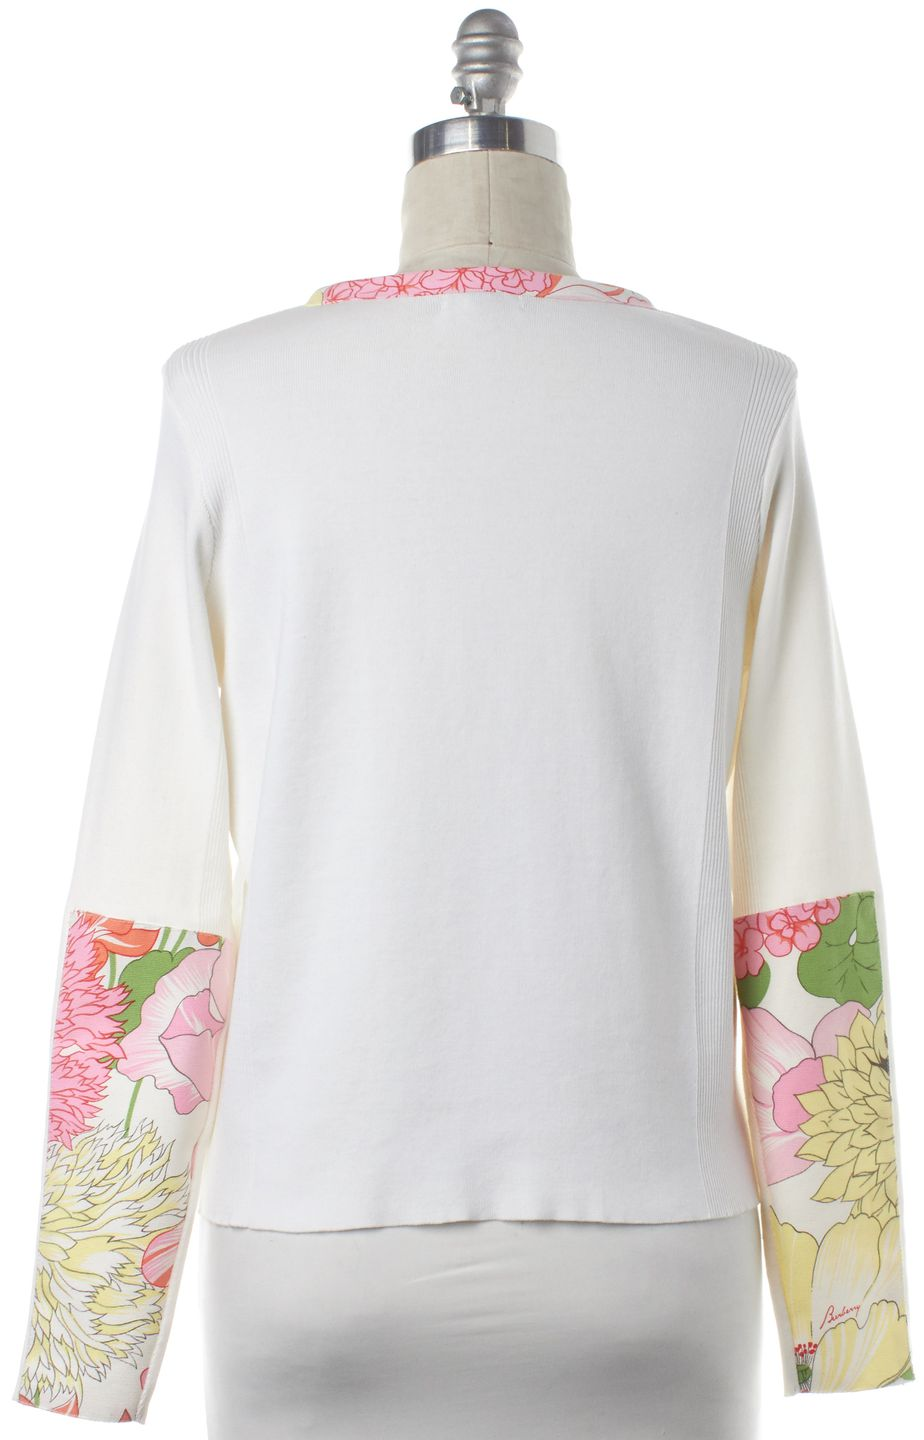 BURBERRY LONDON Ivory Floral Detail Long Sleeve Top